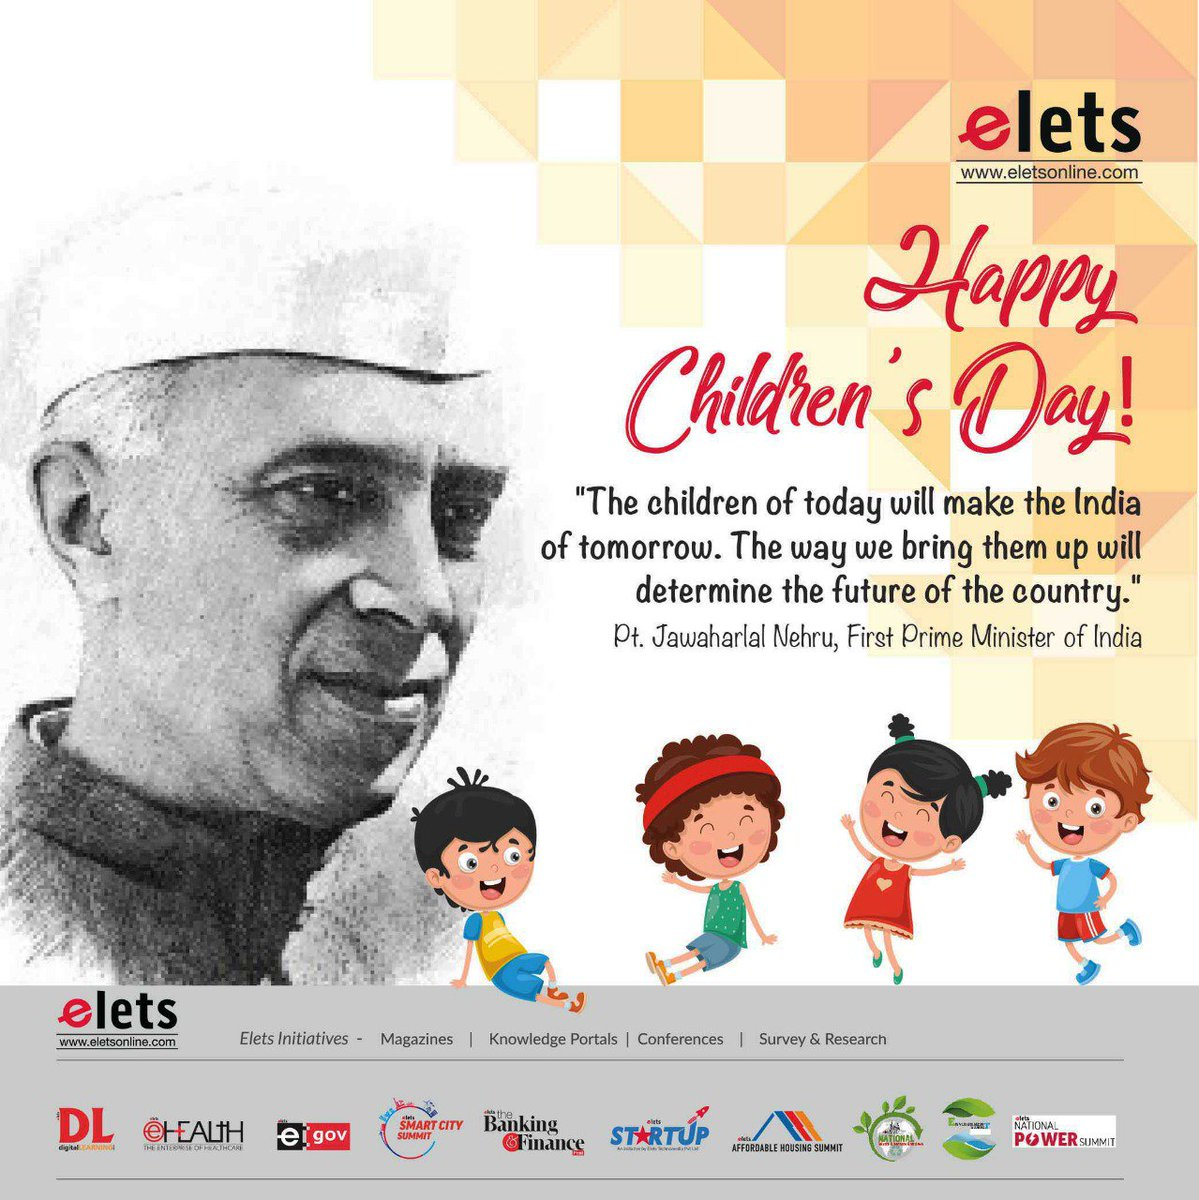 test Twitter Media - We wish good luck to those who will decide the growth of the society in future...  HAPPY CHILDREN's DAY!!!  #Childrensday #education #schooleducation  @eletsonline @chandananand26 @dubeyashutosh79 https://t.co/IY9rvipSoU